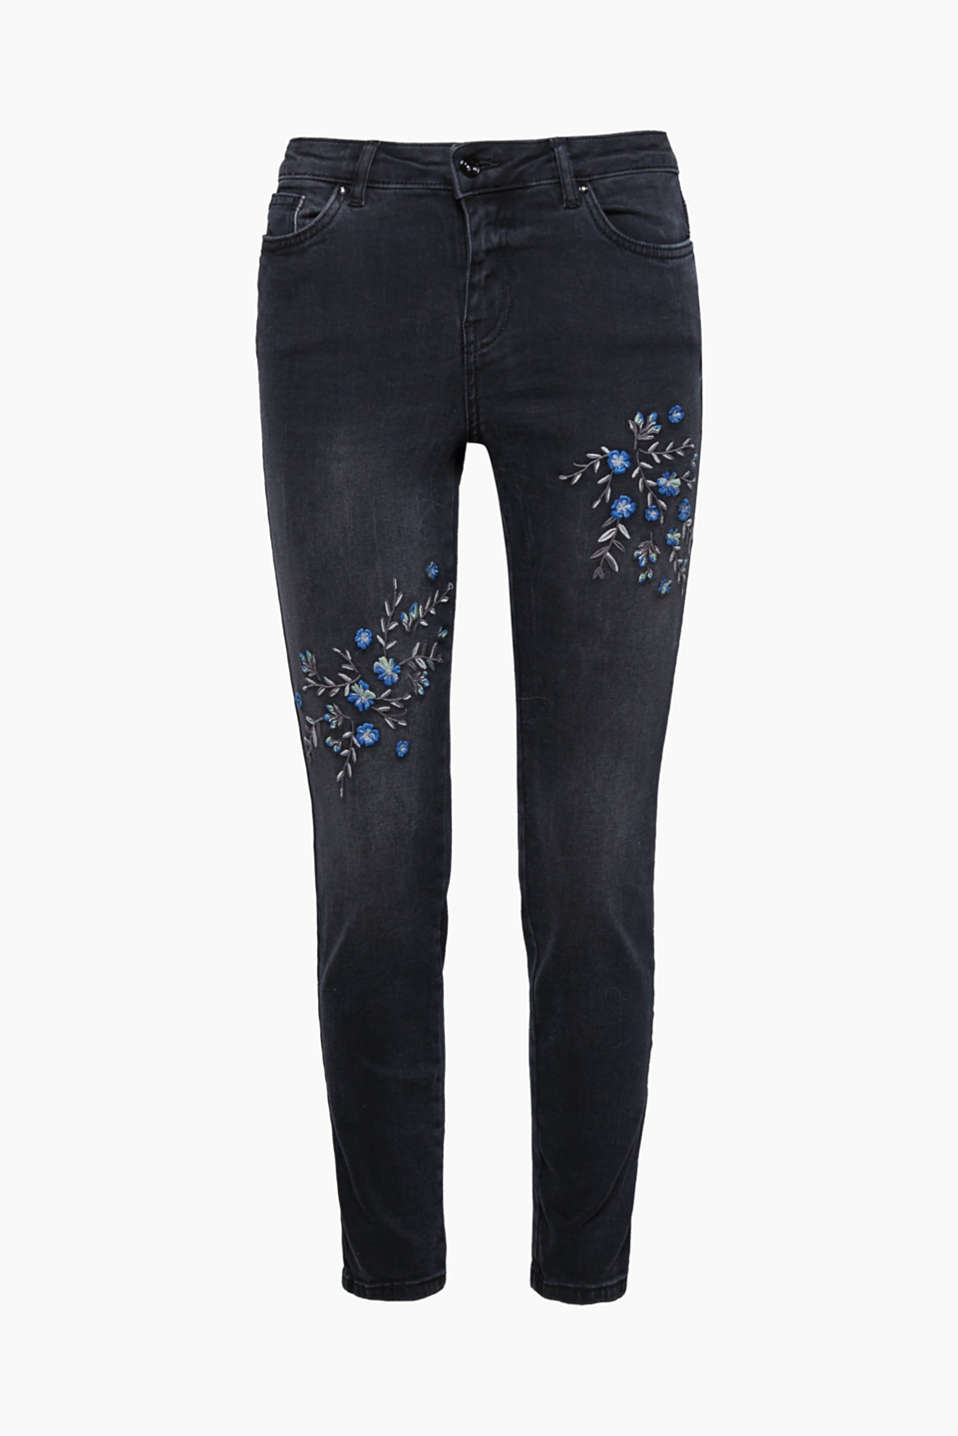 The bold floral embroidery on both legs transforms these jeans into a pretty pair you will love to wear.